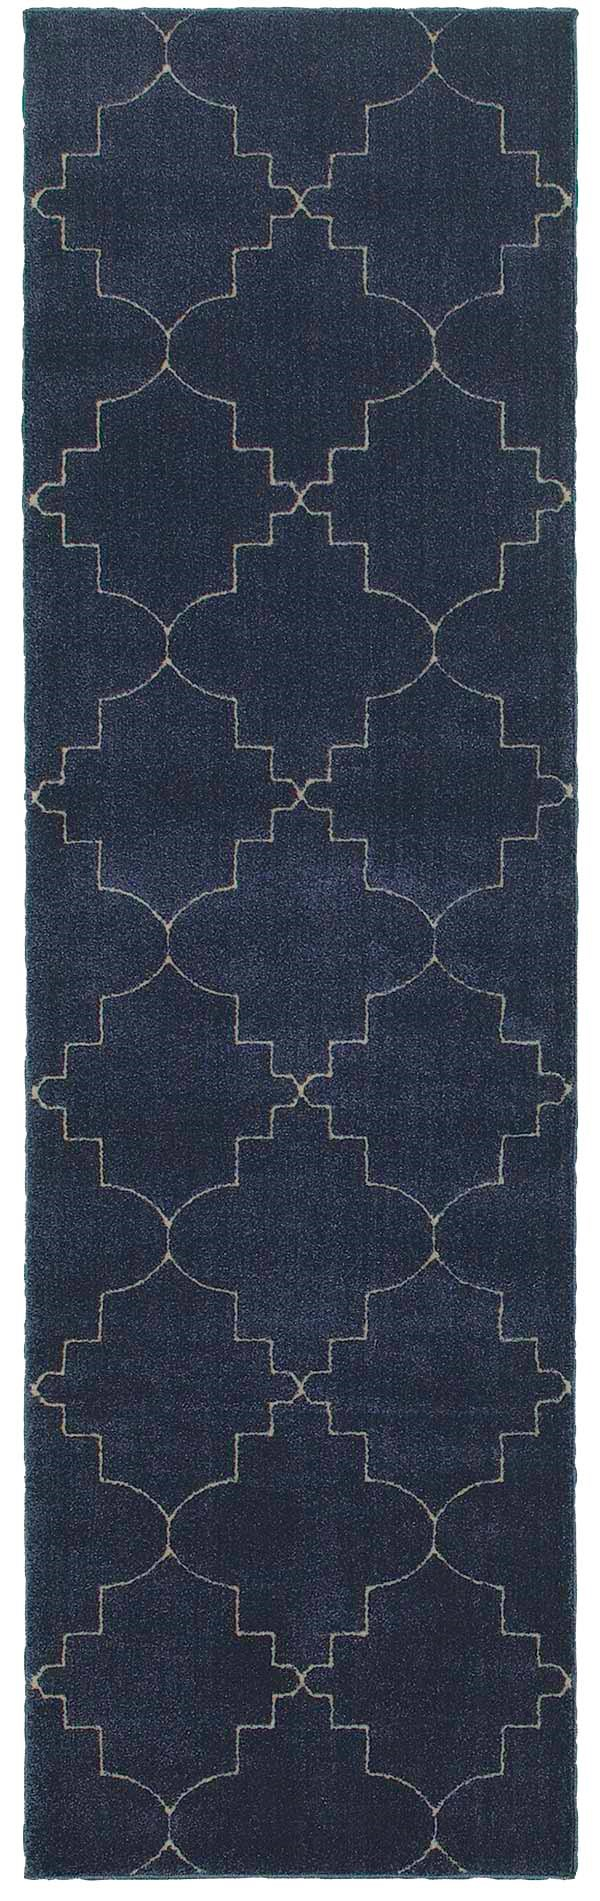 Navy, Ivory (5994B) Transitional Area Rug